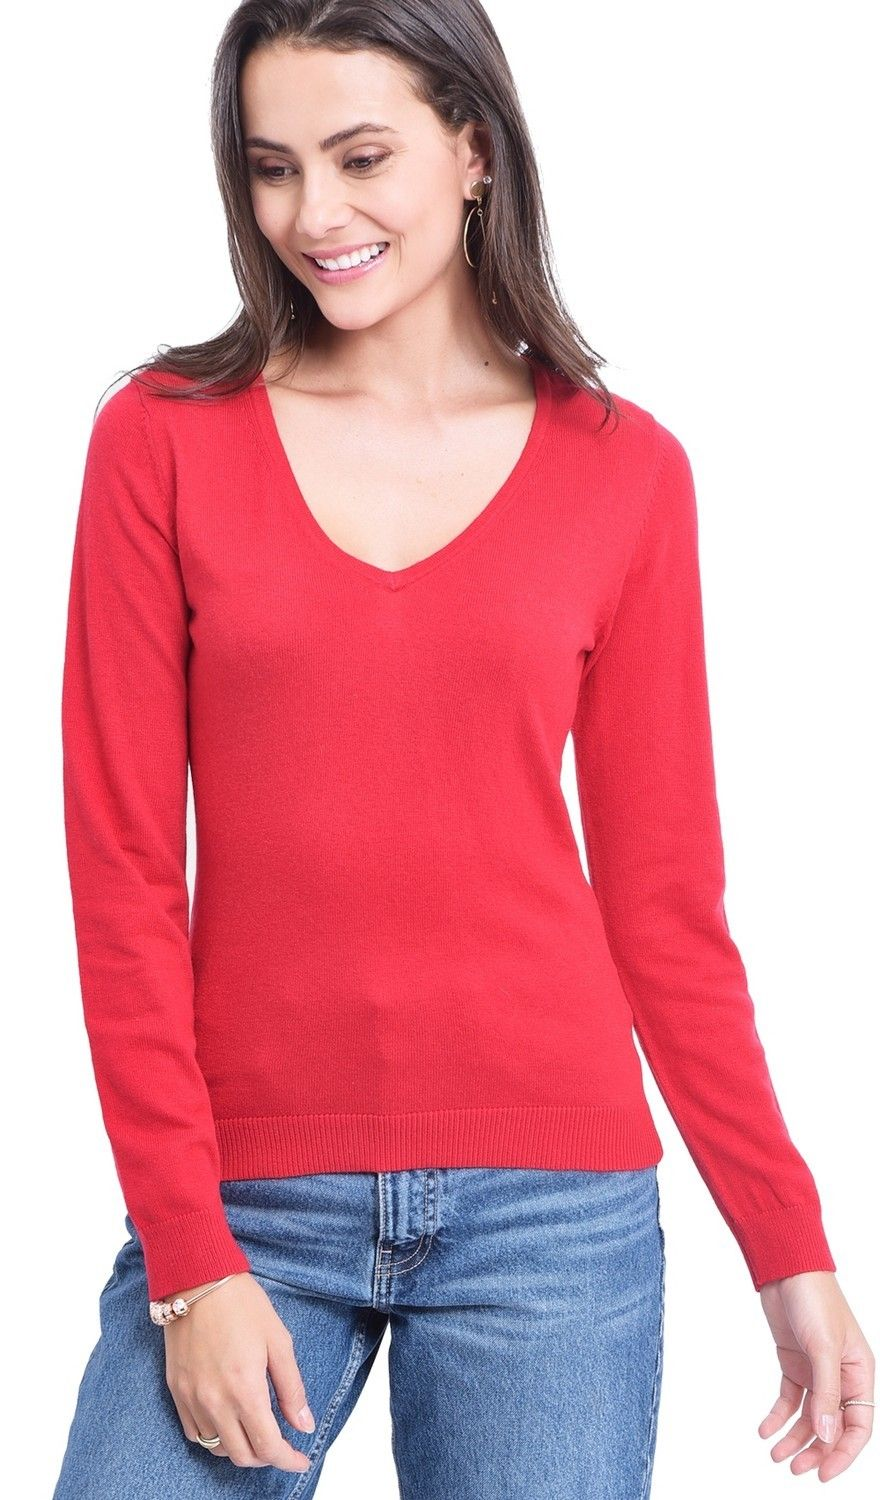 Assuili V-neck Sweater in Red